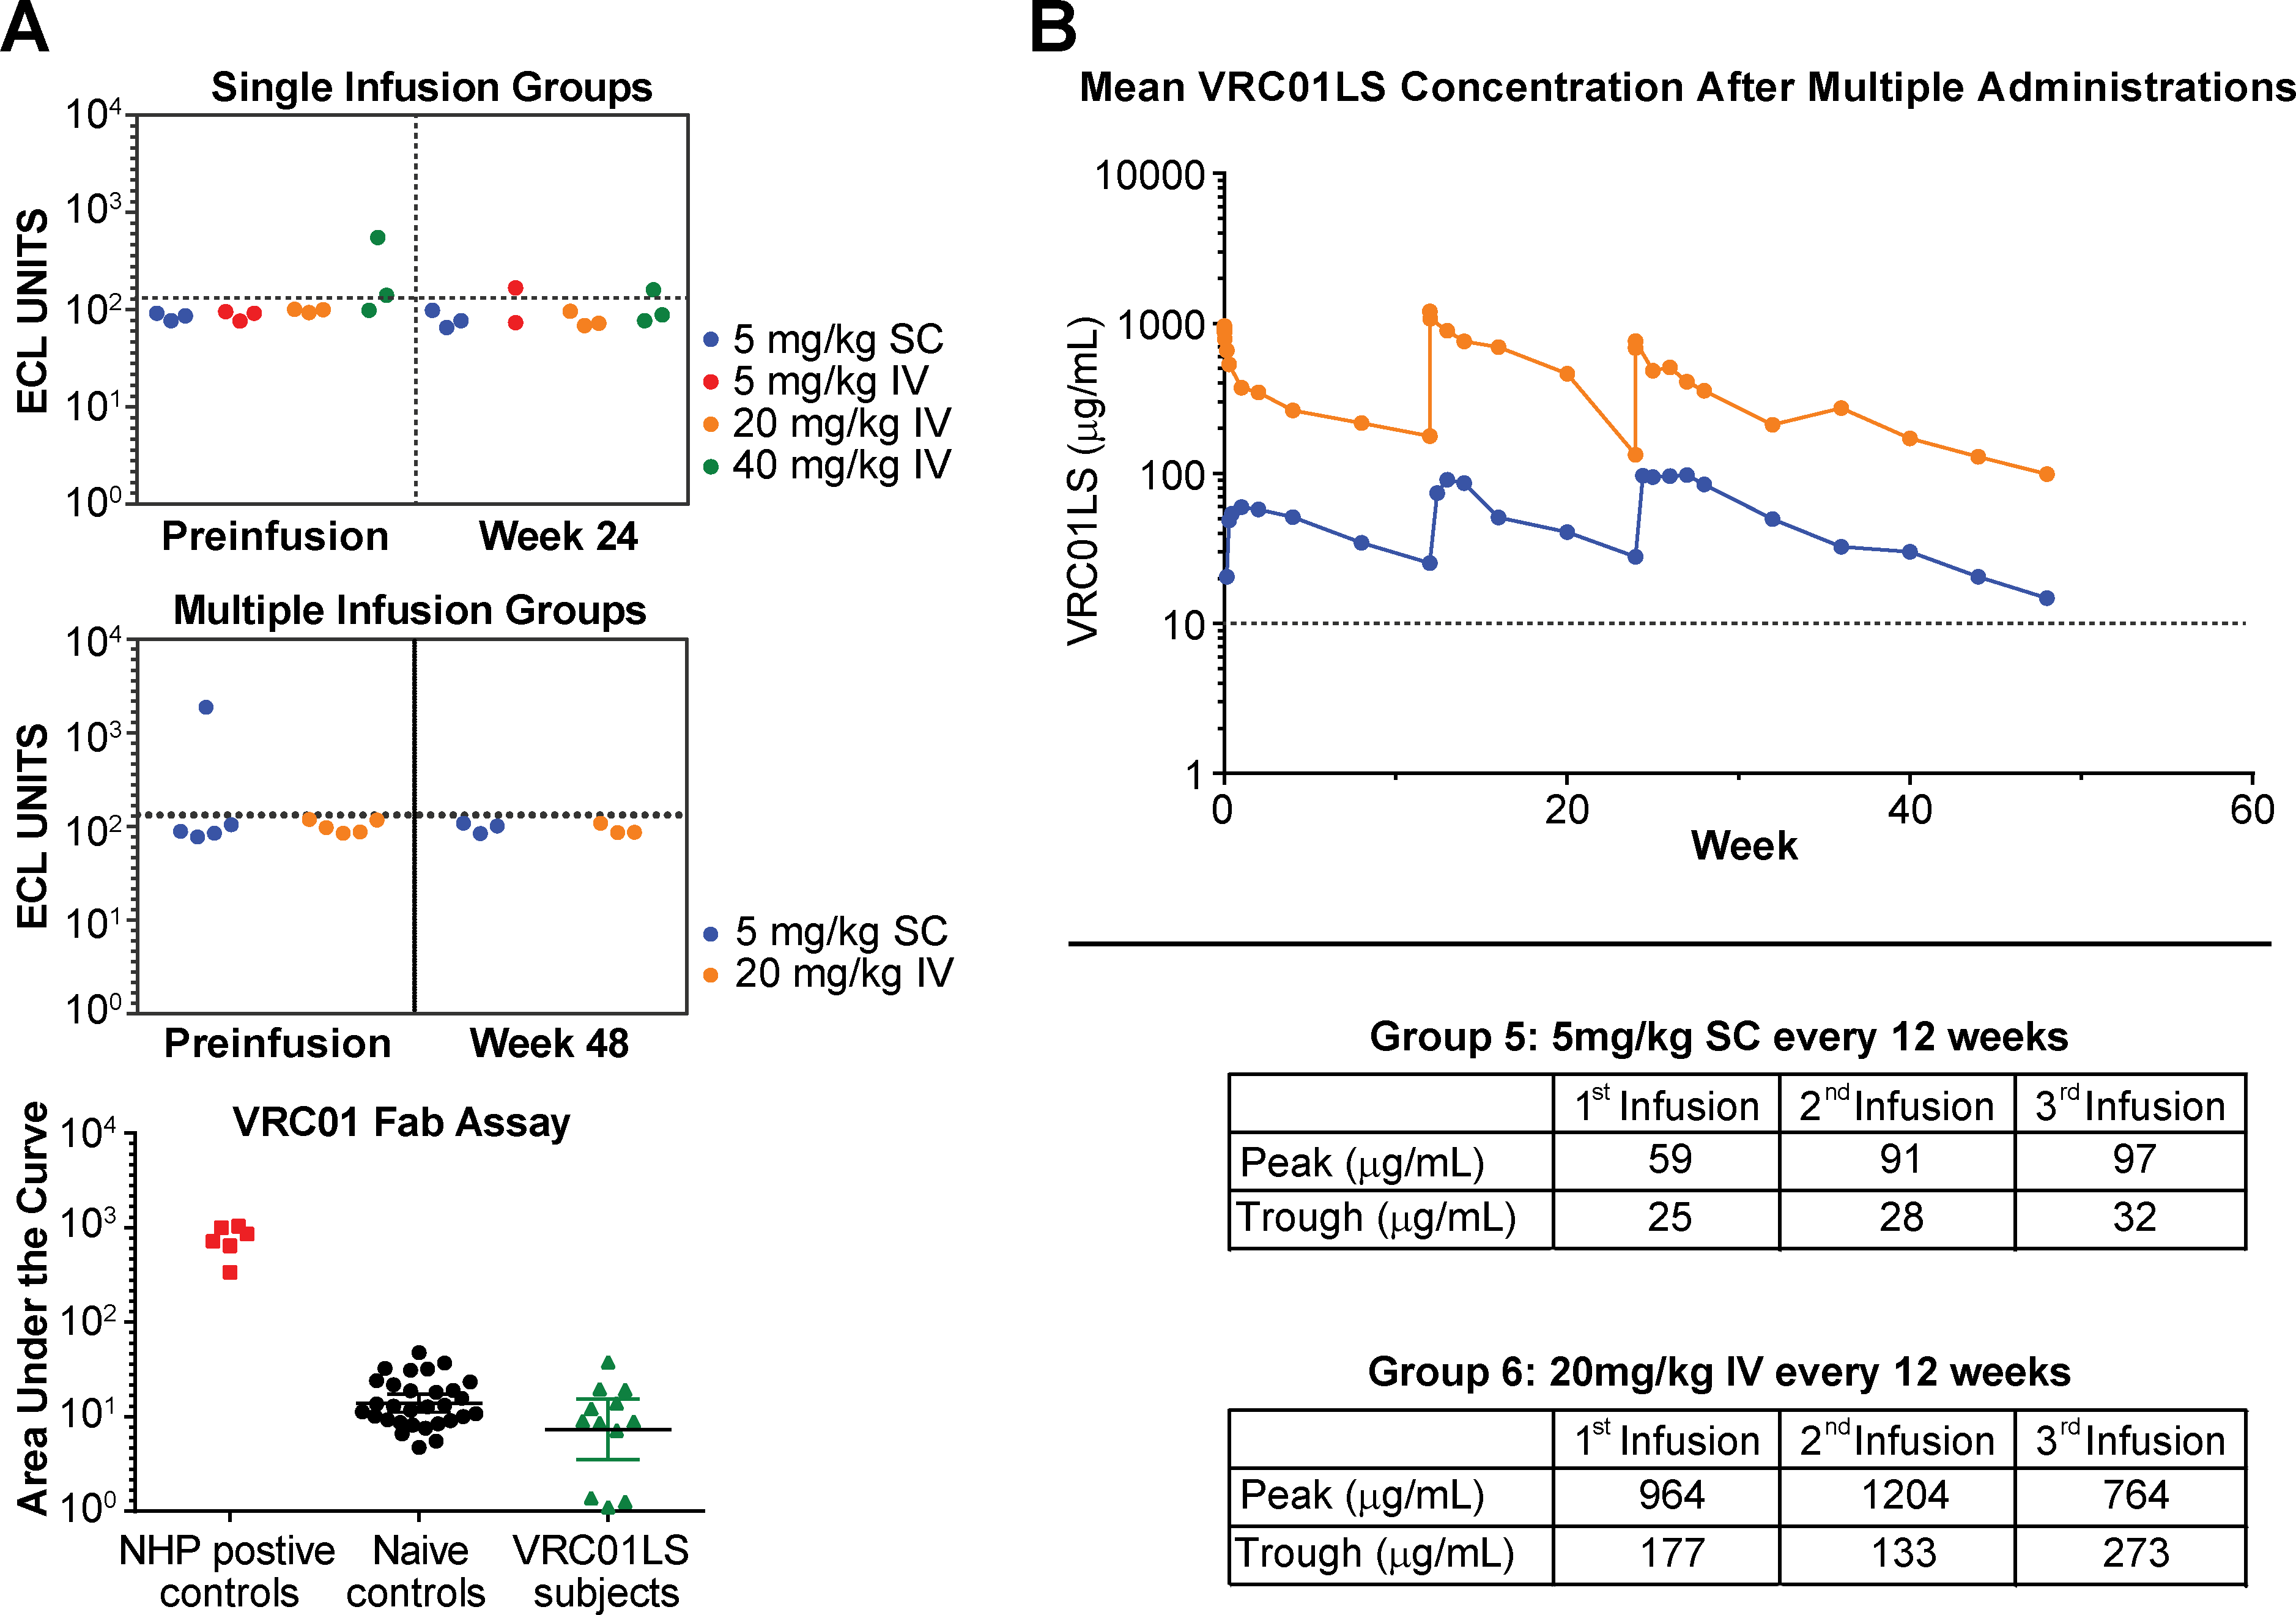 Evaluation of multiple administration of VRC01LS and assessment for anti-VRC01 antibodies.